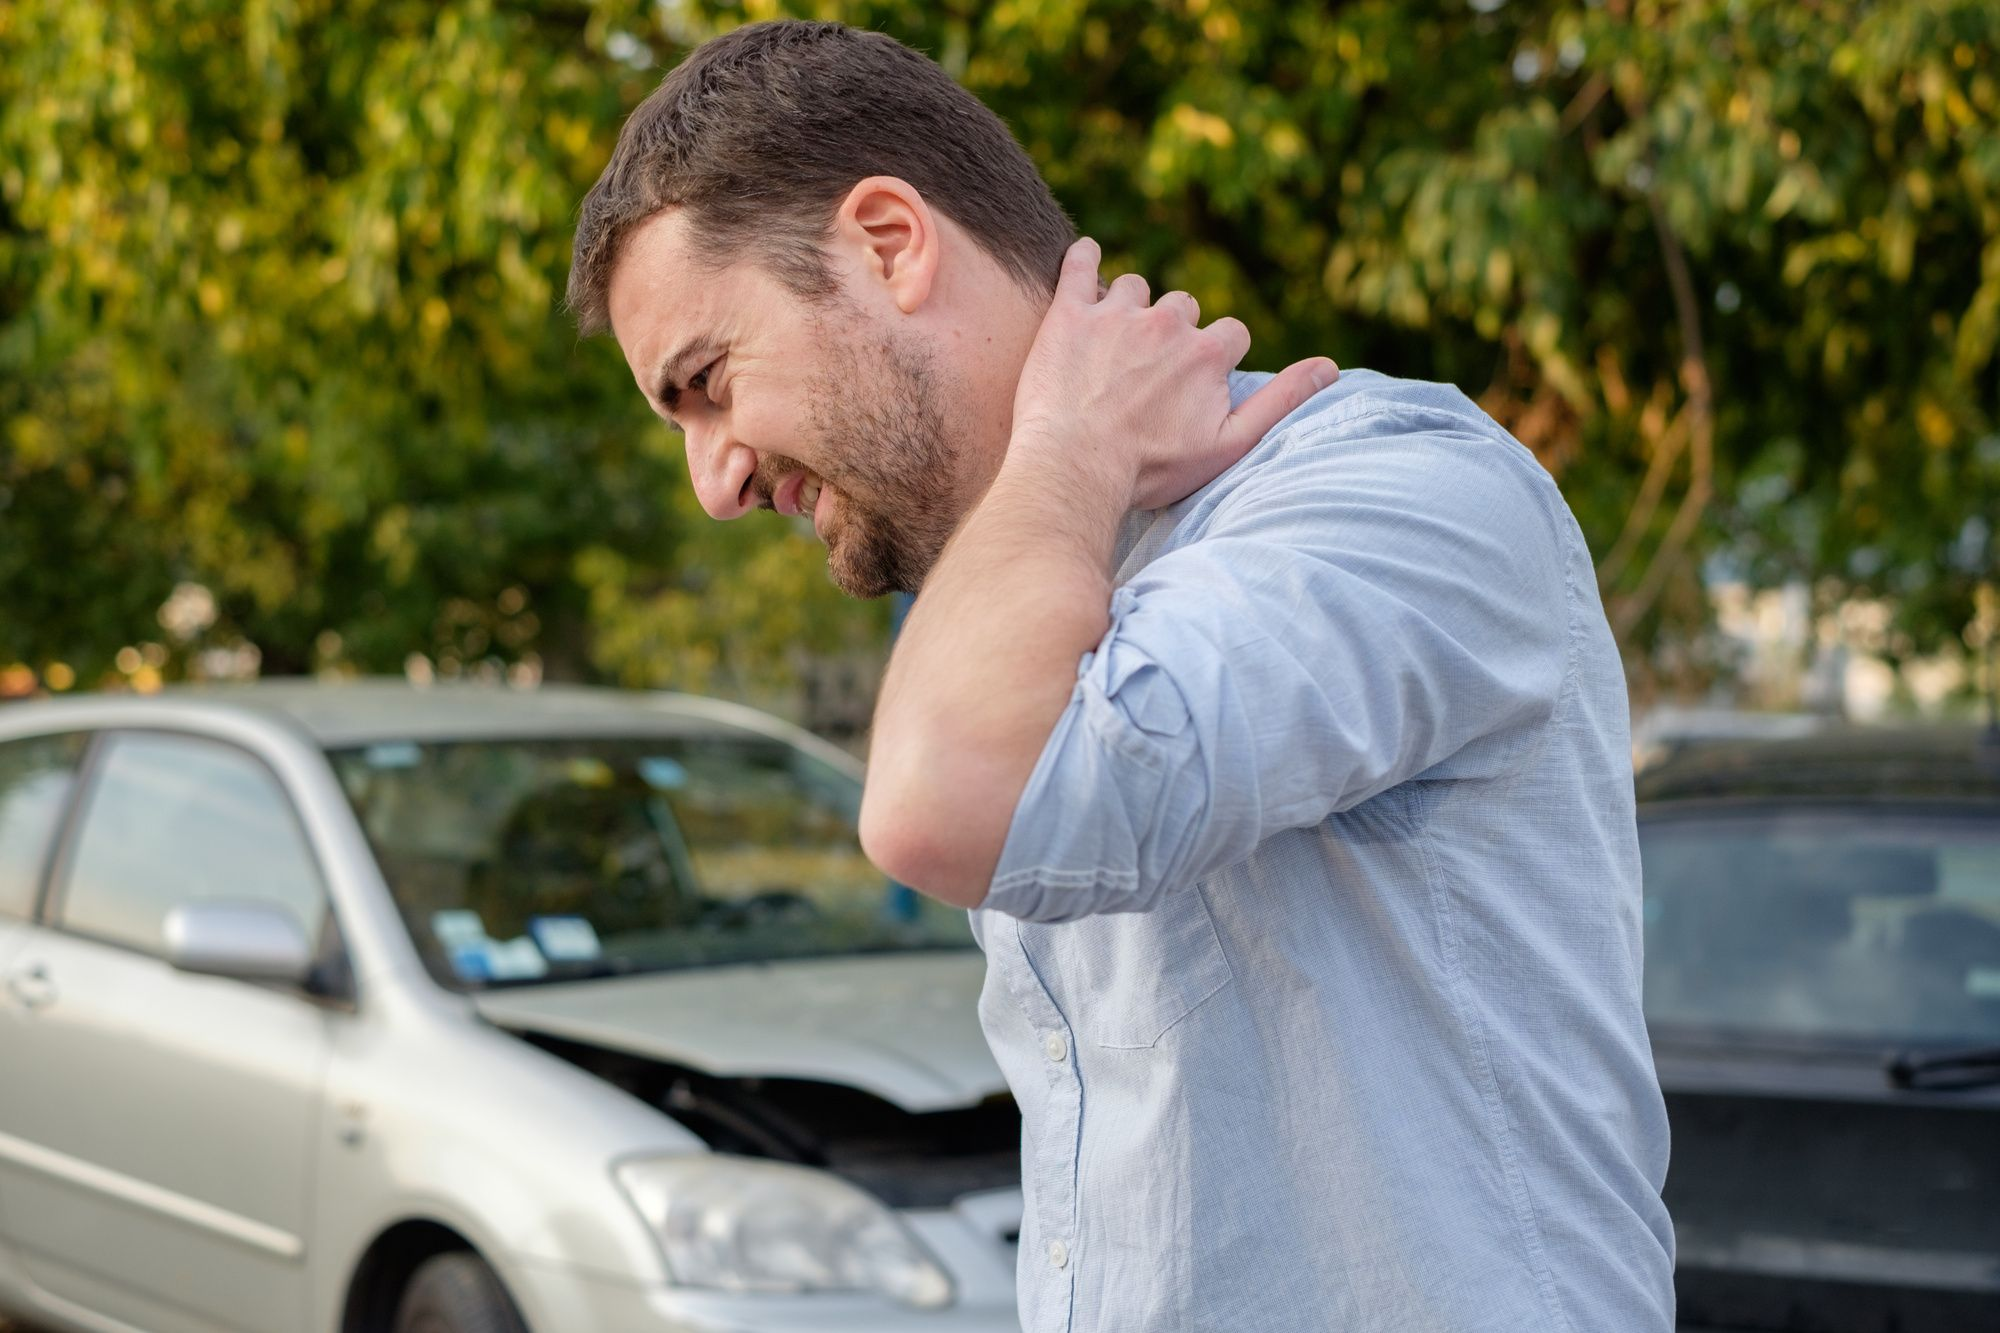 How Long Do You Need to See an Auto Accident Chiropractor?